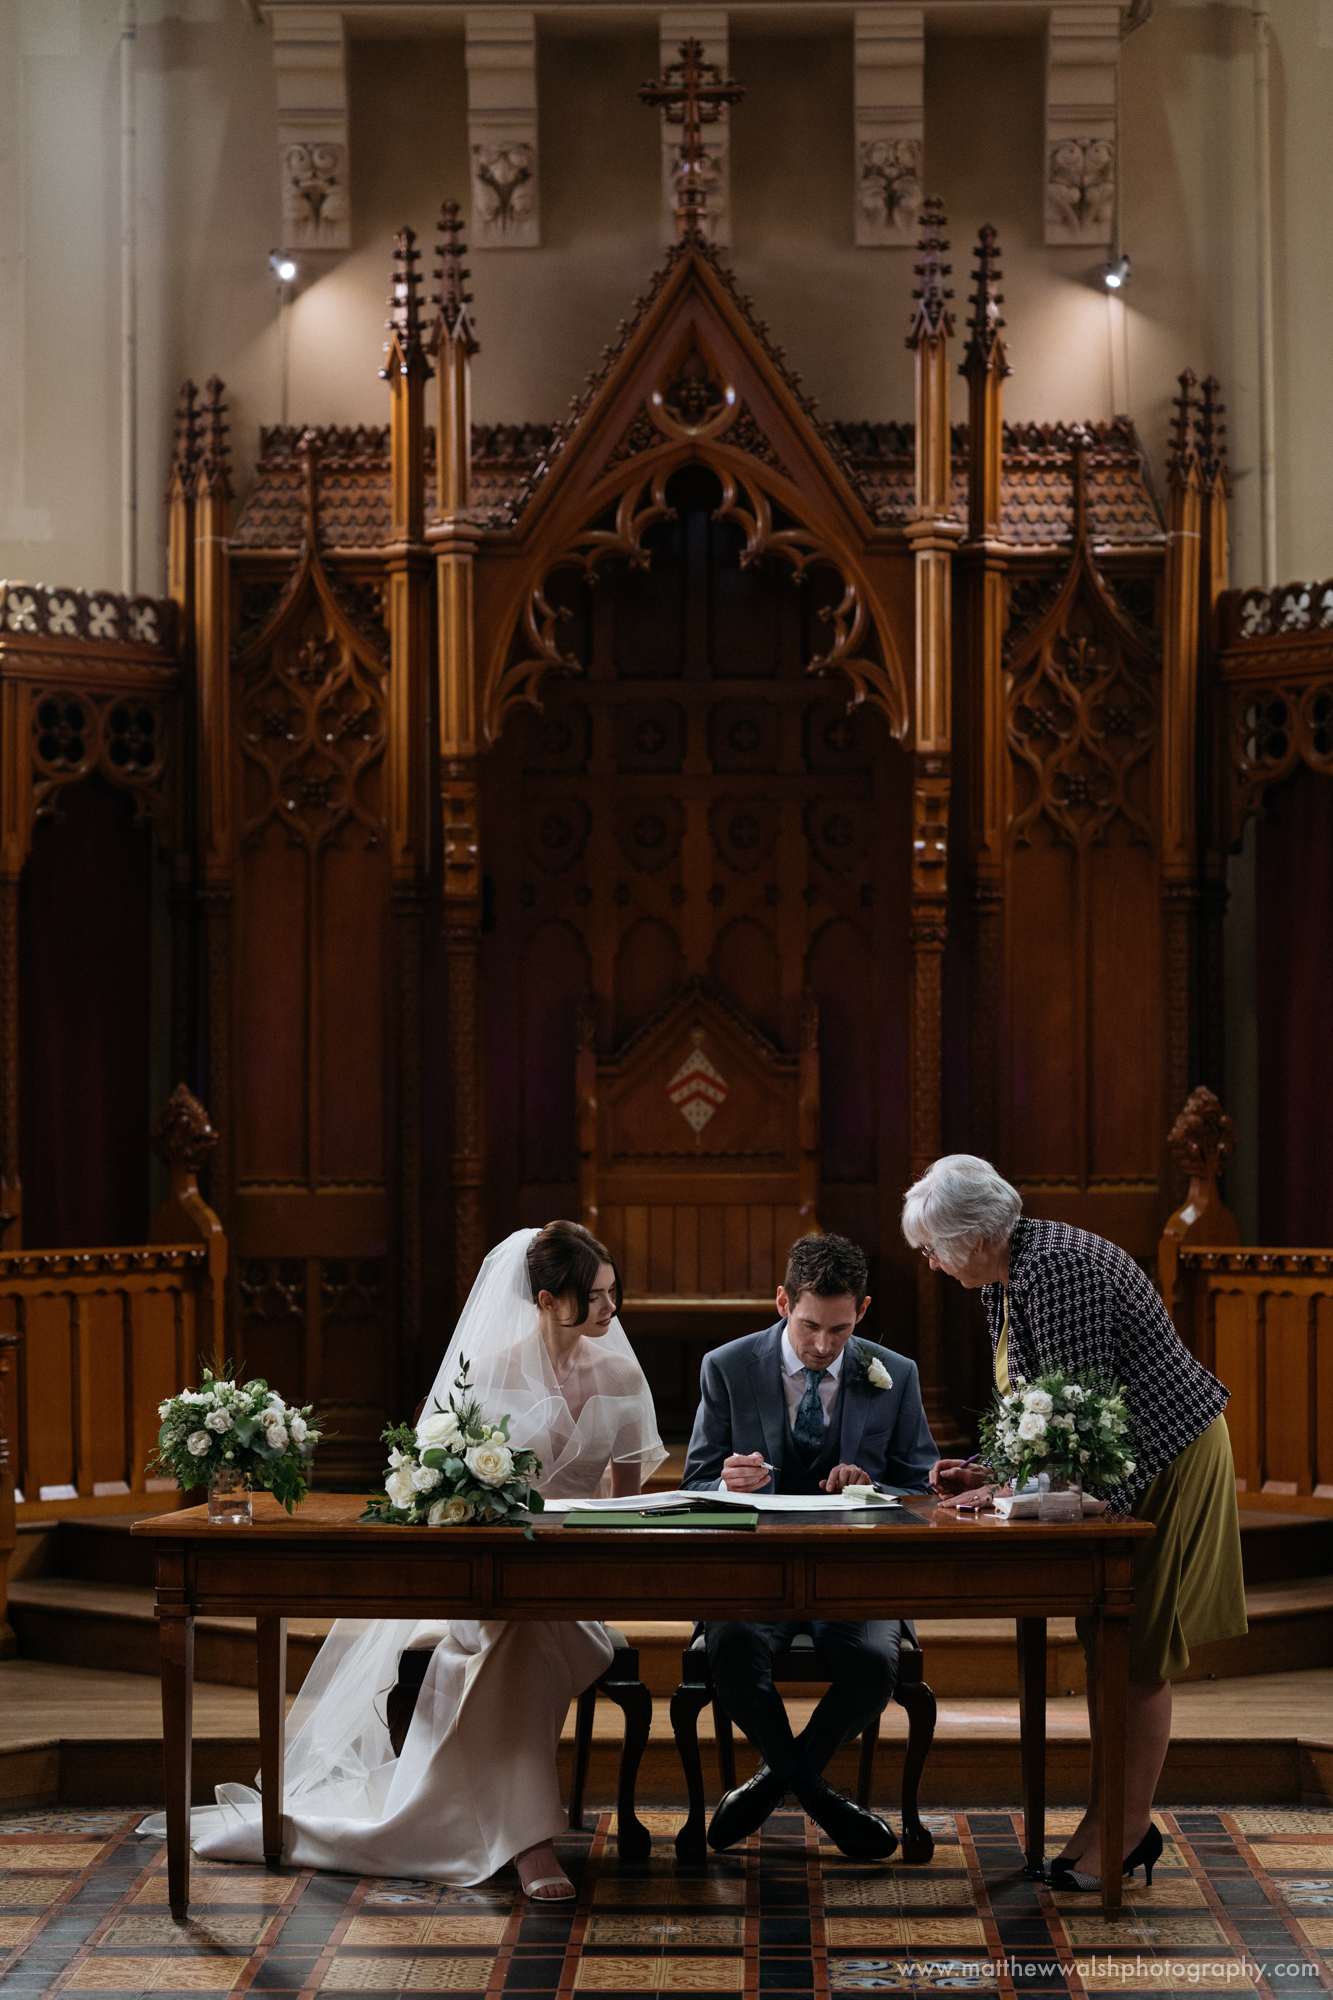 Signing the wedding register in the hall chapel at Stanbrook Abbey